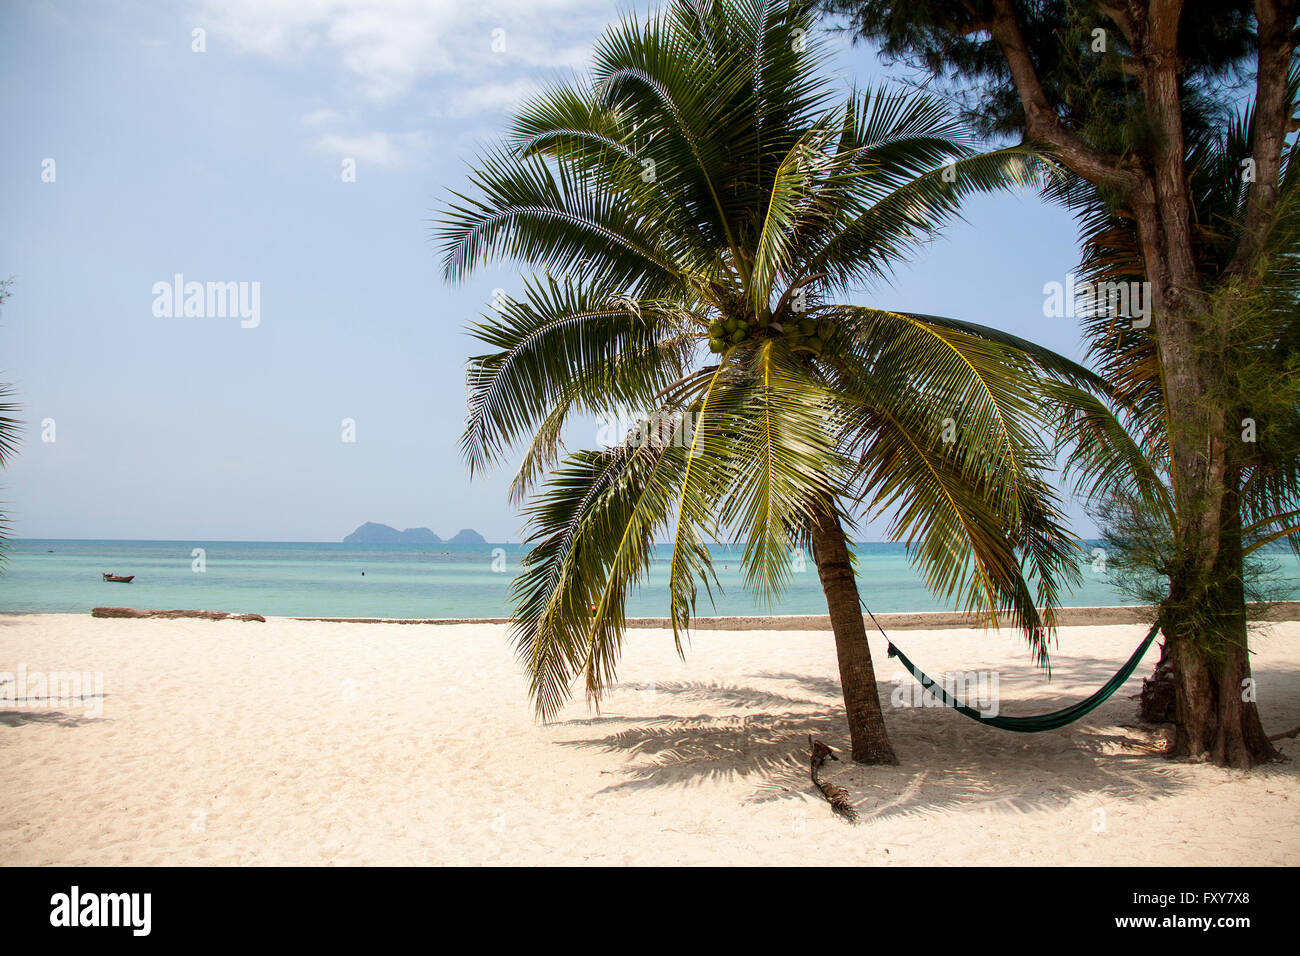 Palm tree beach, white sand and blue water at the Island Pha Ngan, Thailand Stock Photo